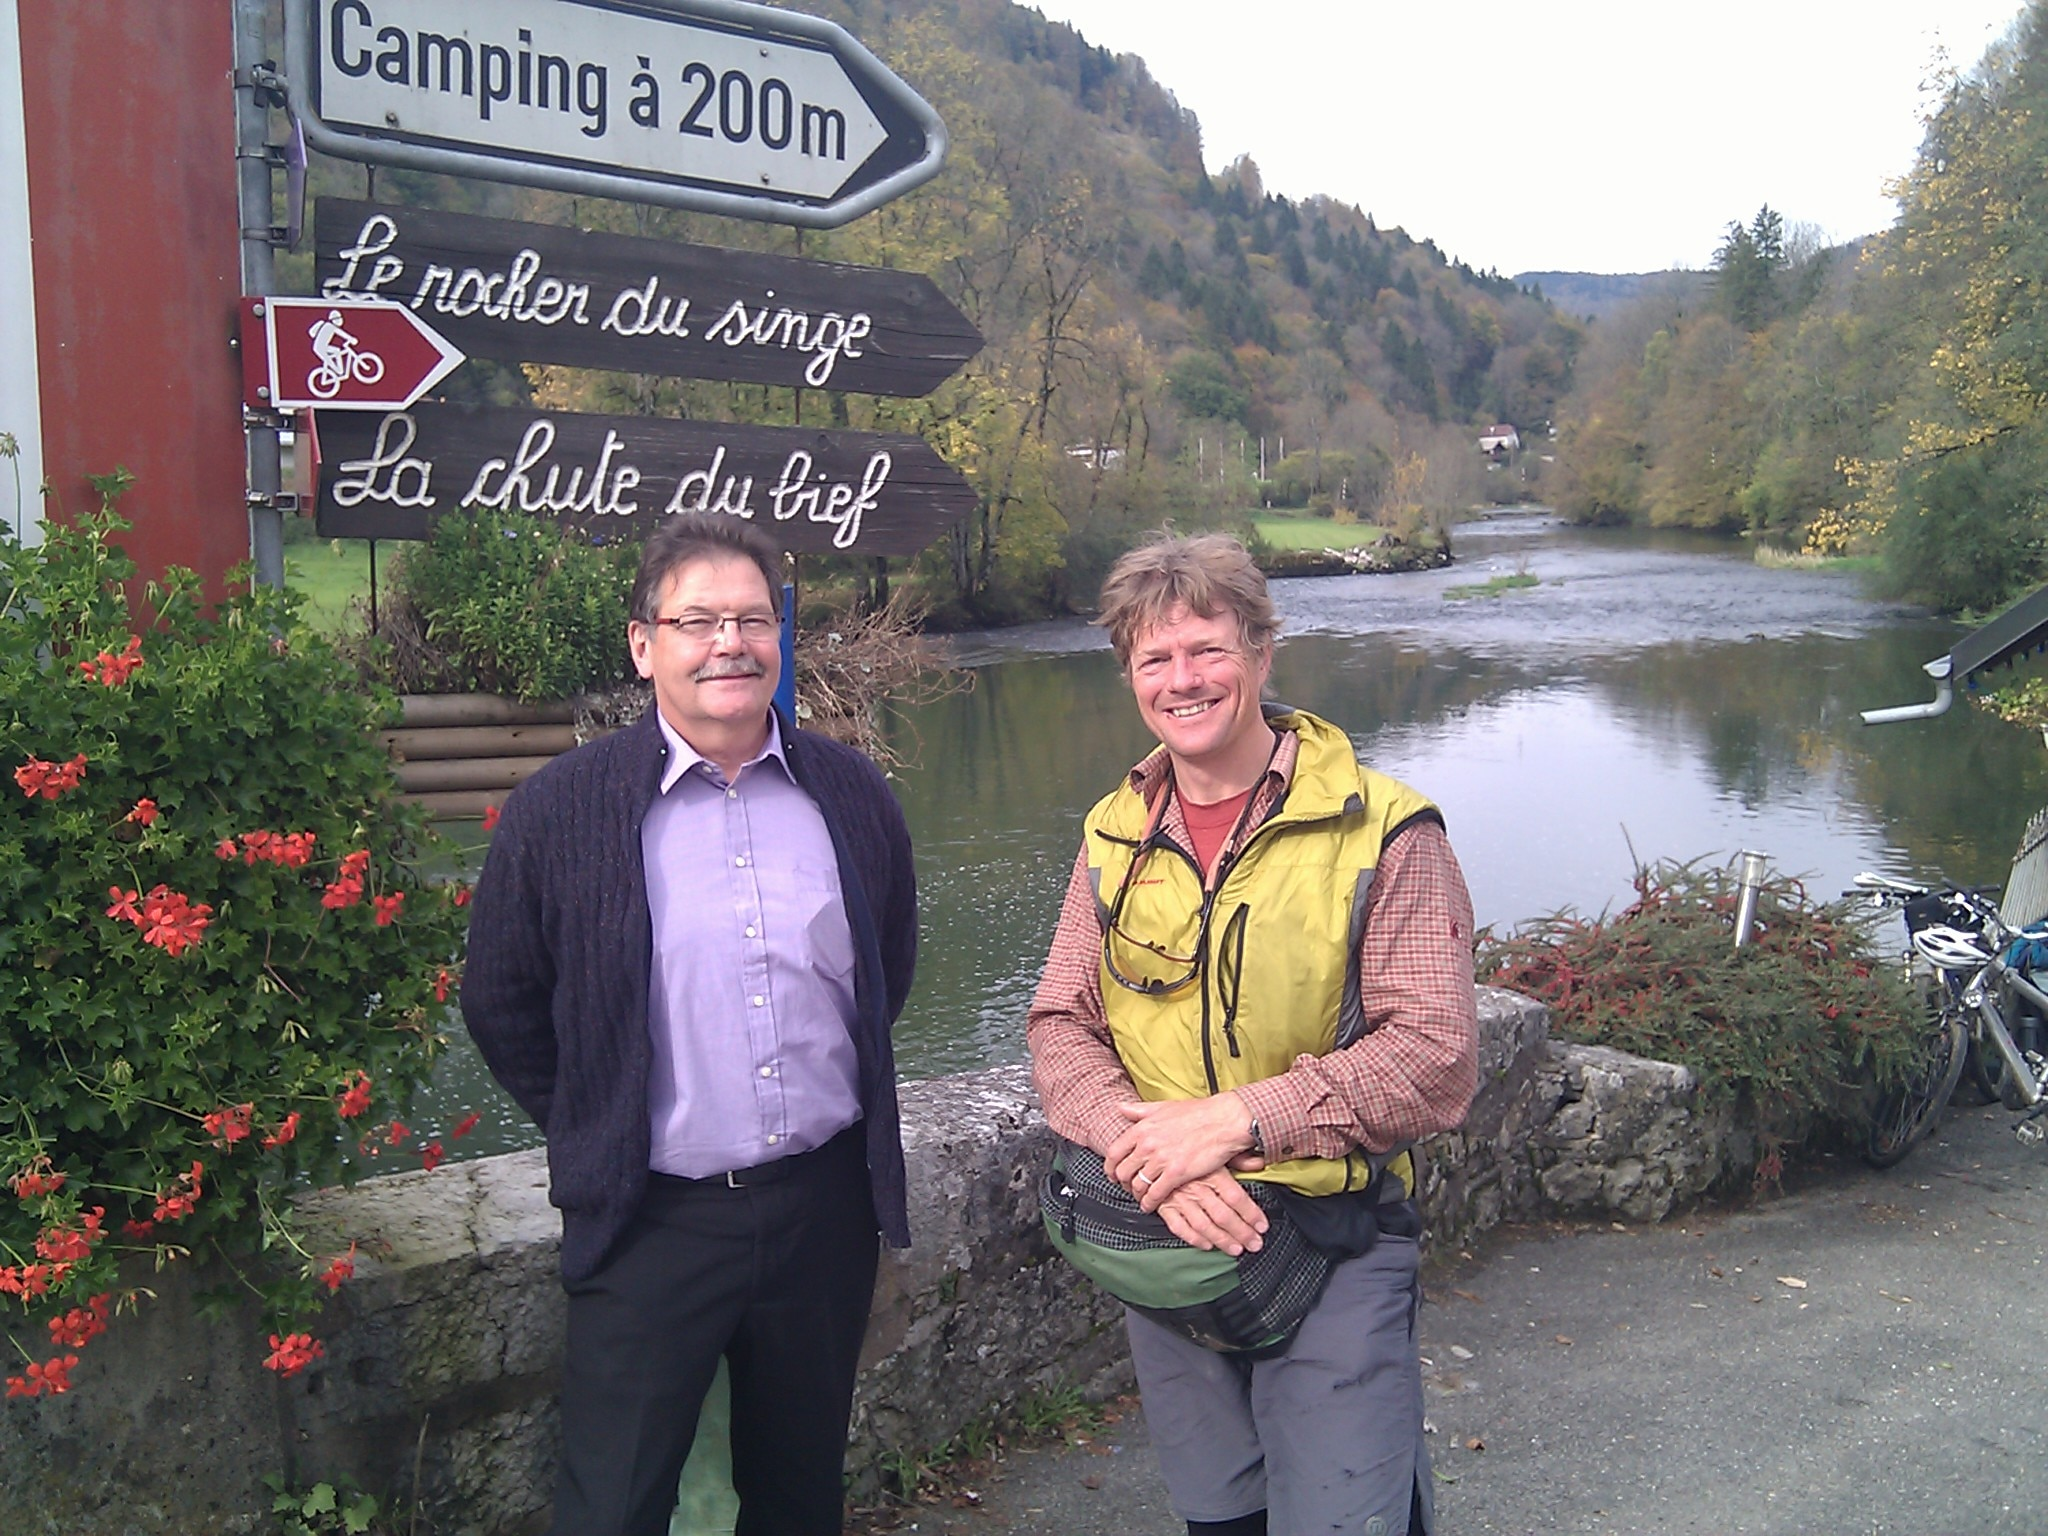 Gérard Cattin, the secretary general of the Association for the Parc Natural Régional du Doubs, with whom I visited over a trout lunch in Goumois.